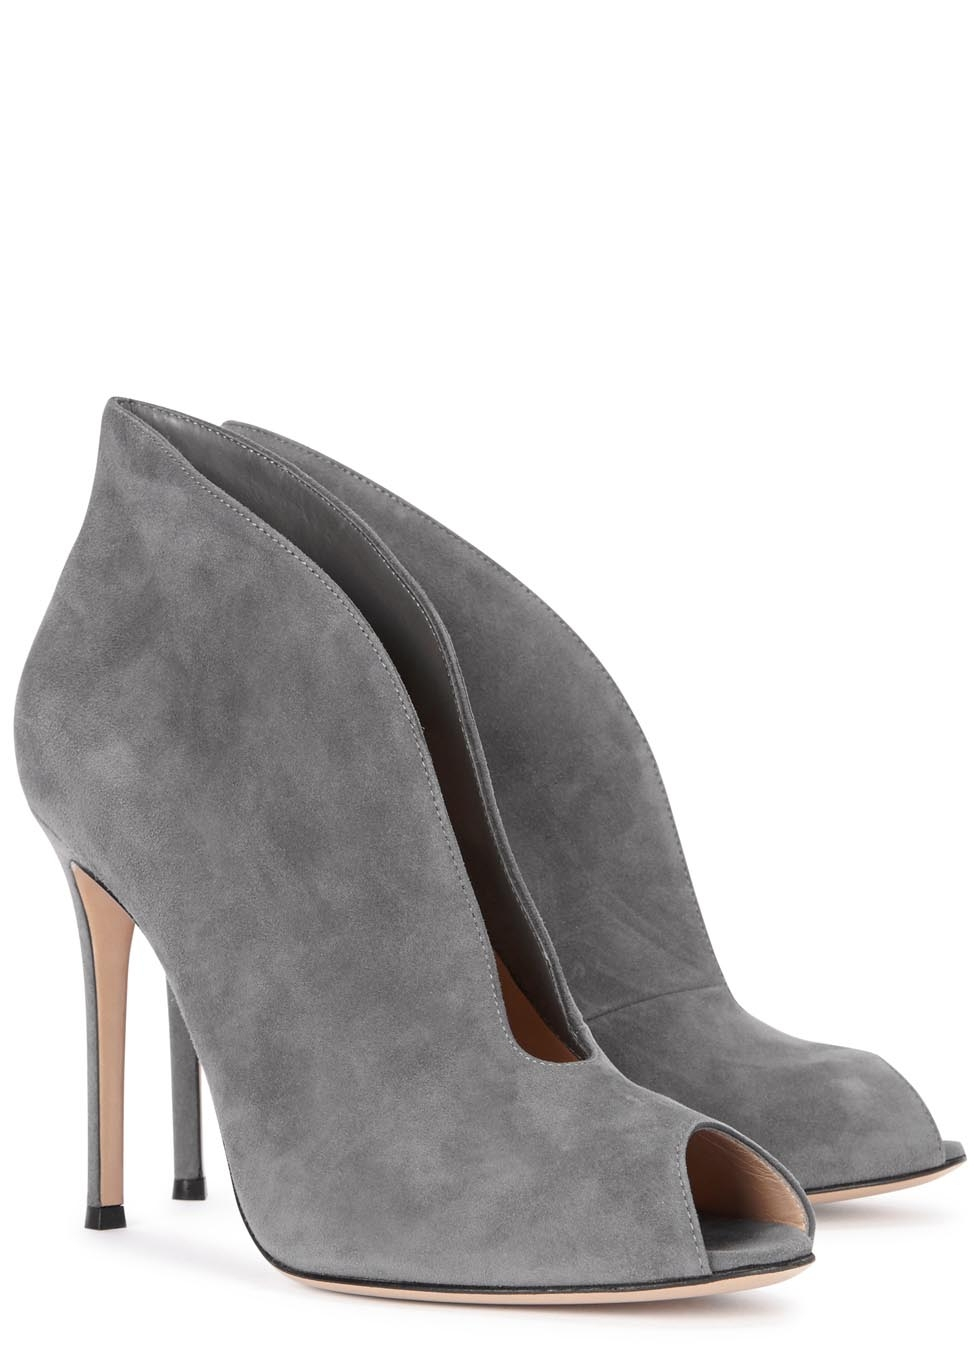 Gianvito Rossi Vamp Grey Suede Ankle Boots In Gray Lyst